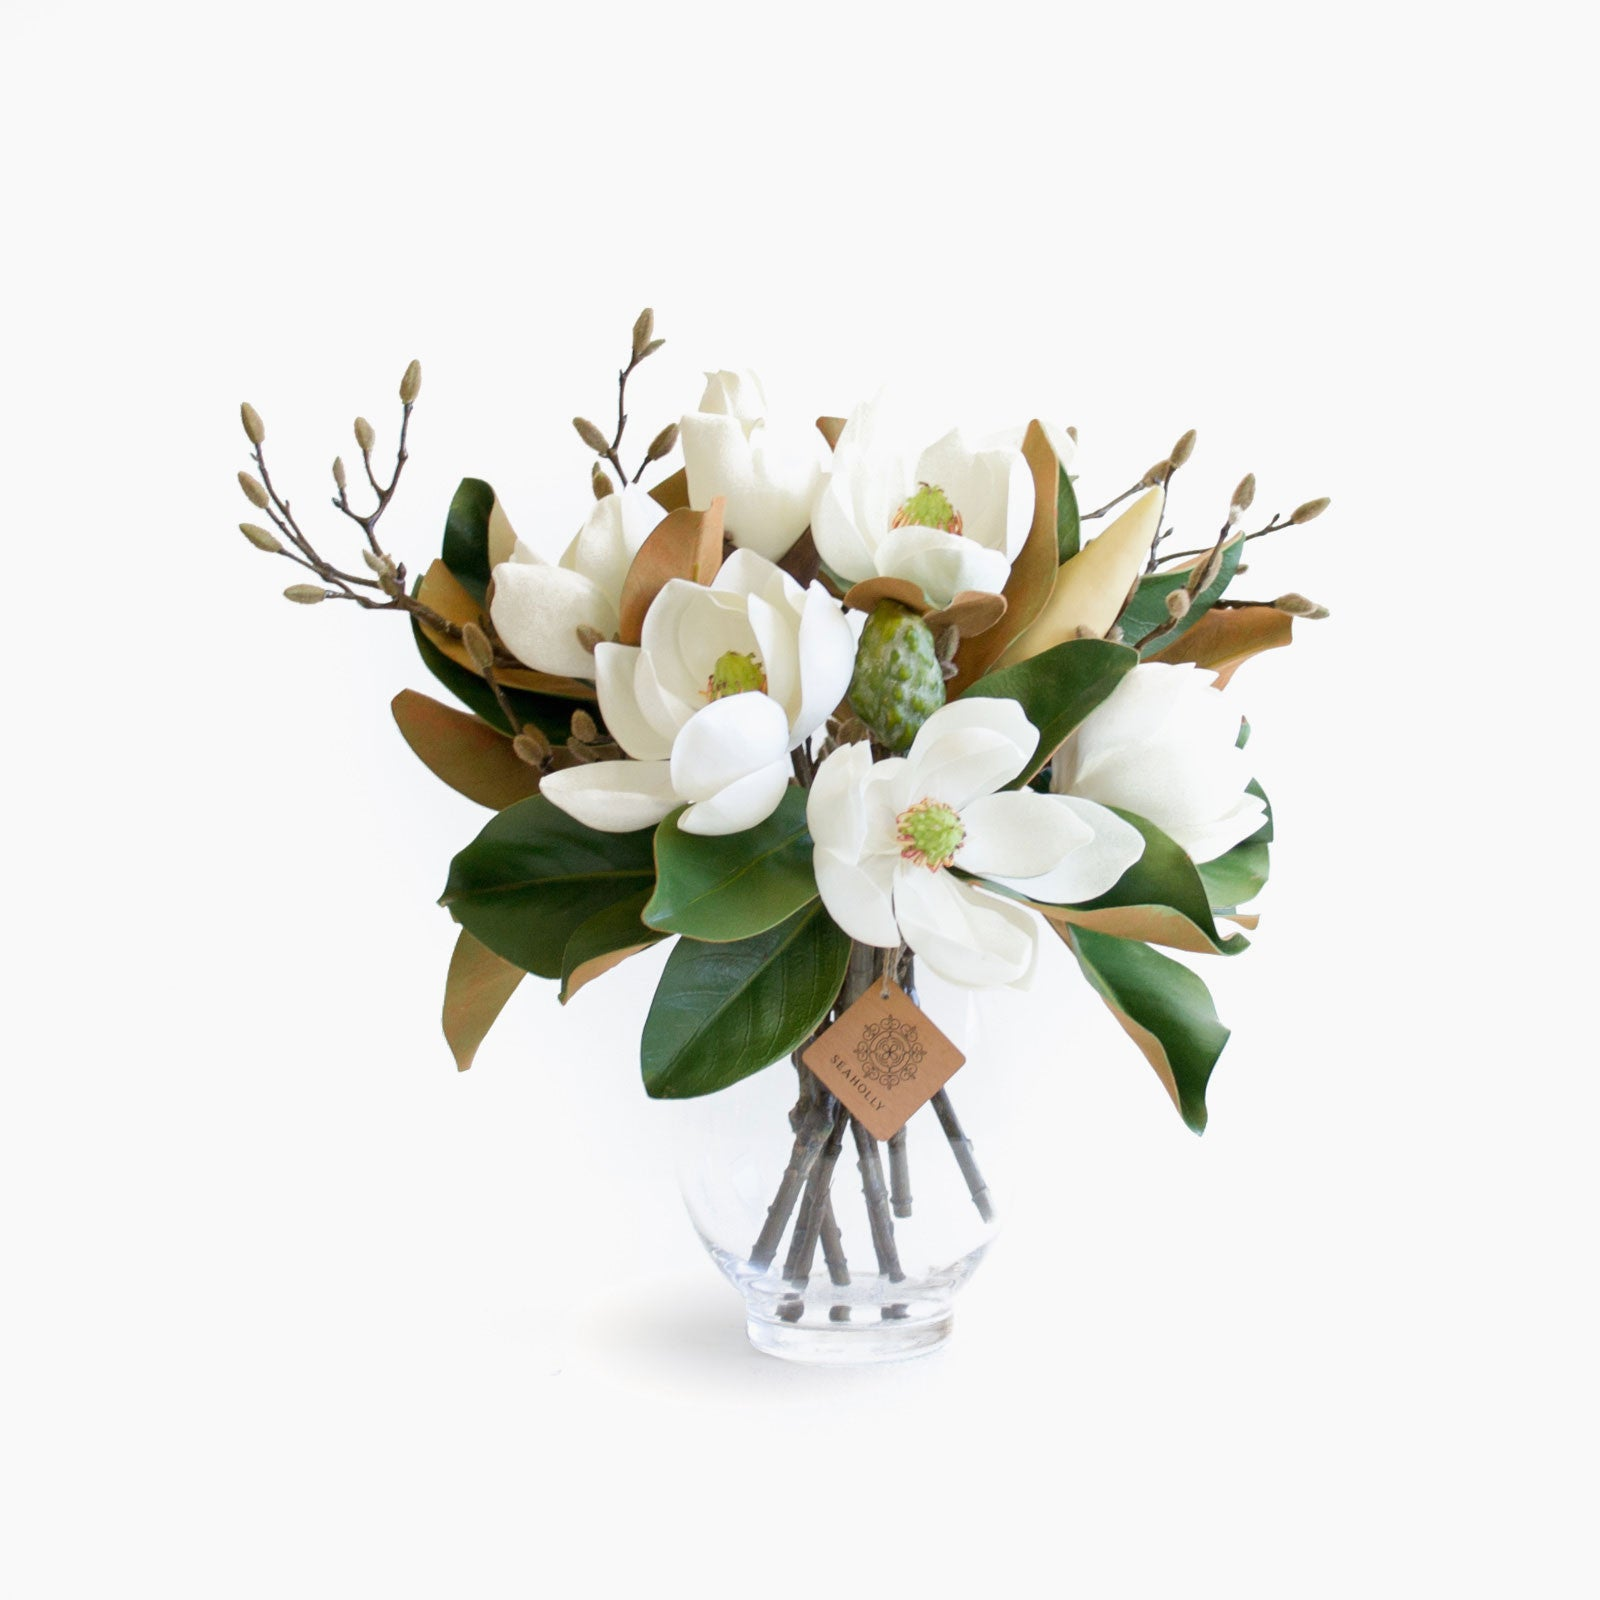 Artificial Magnolia And Budding Branch Bouquet And Arrangement